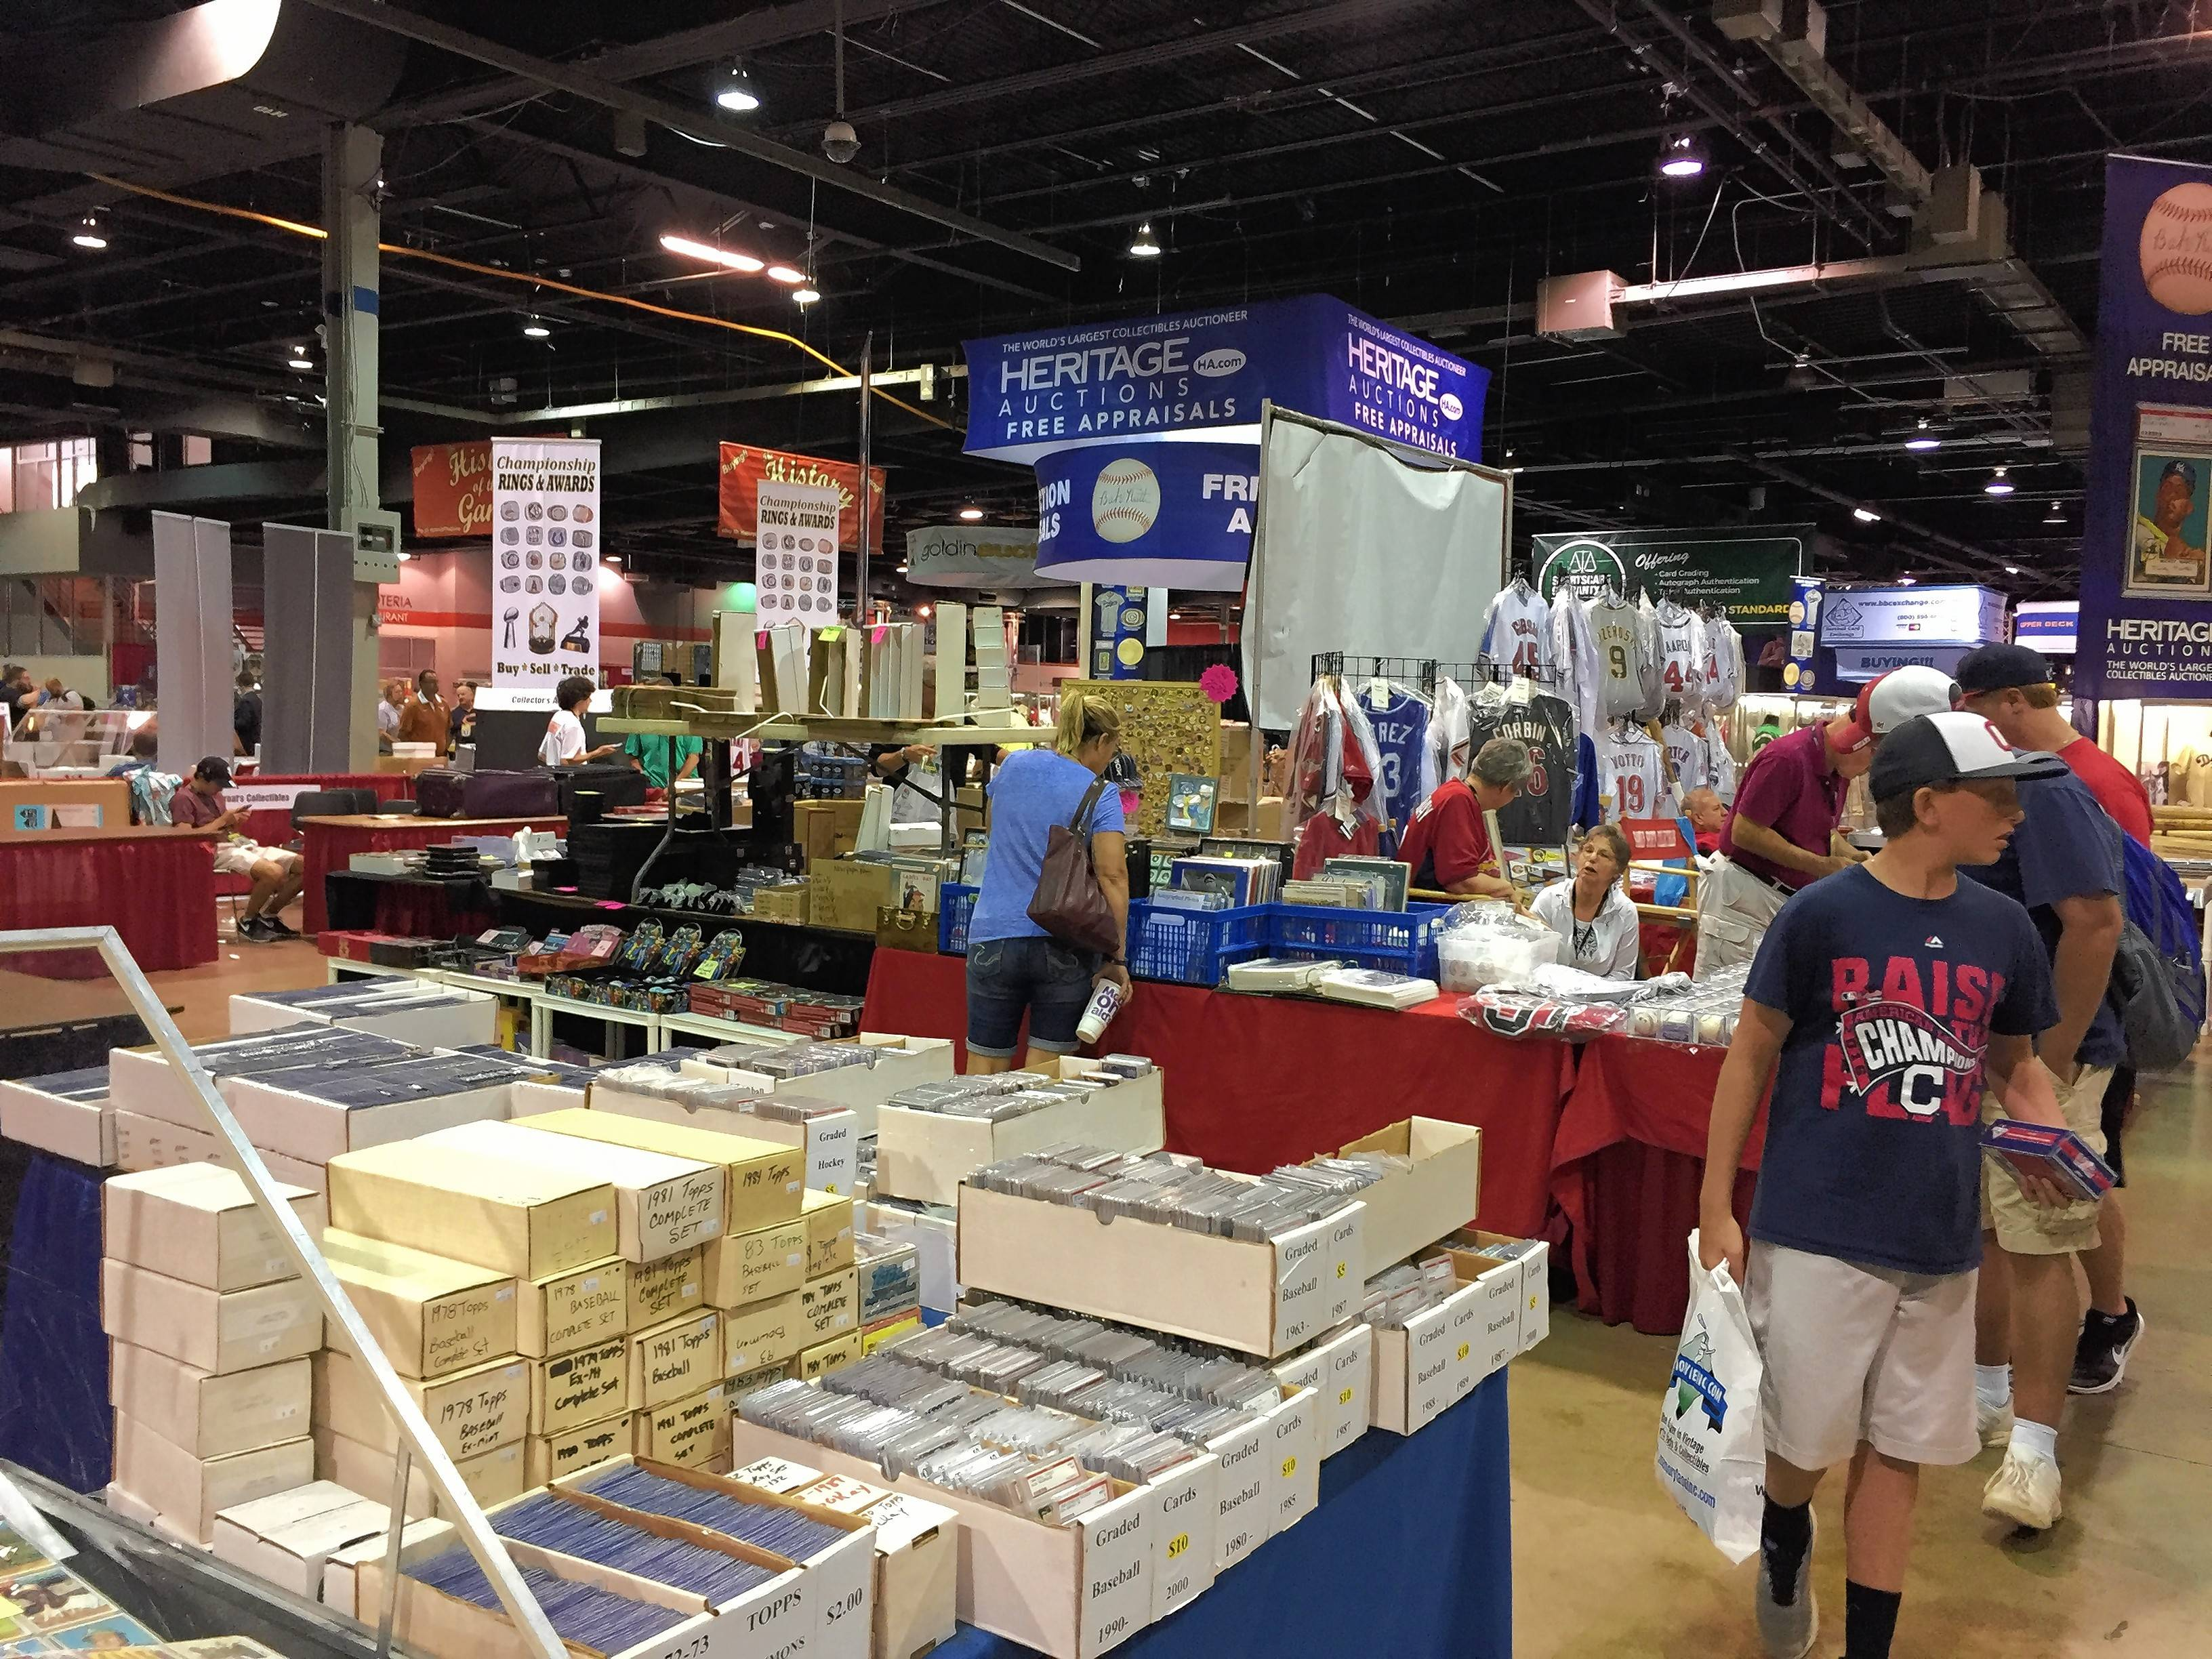 The National Sports Collectors Convention in Rosemont included a variety of collectible cards, memorabilia and autographs.